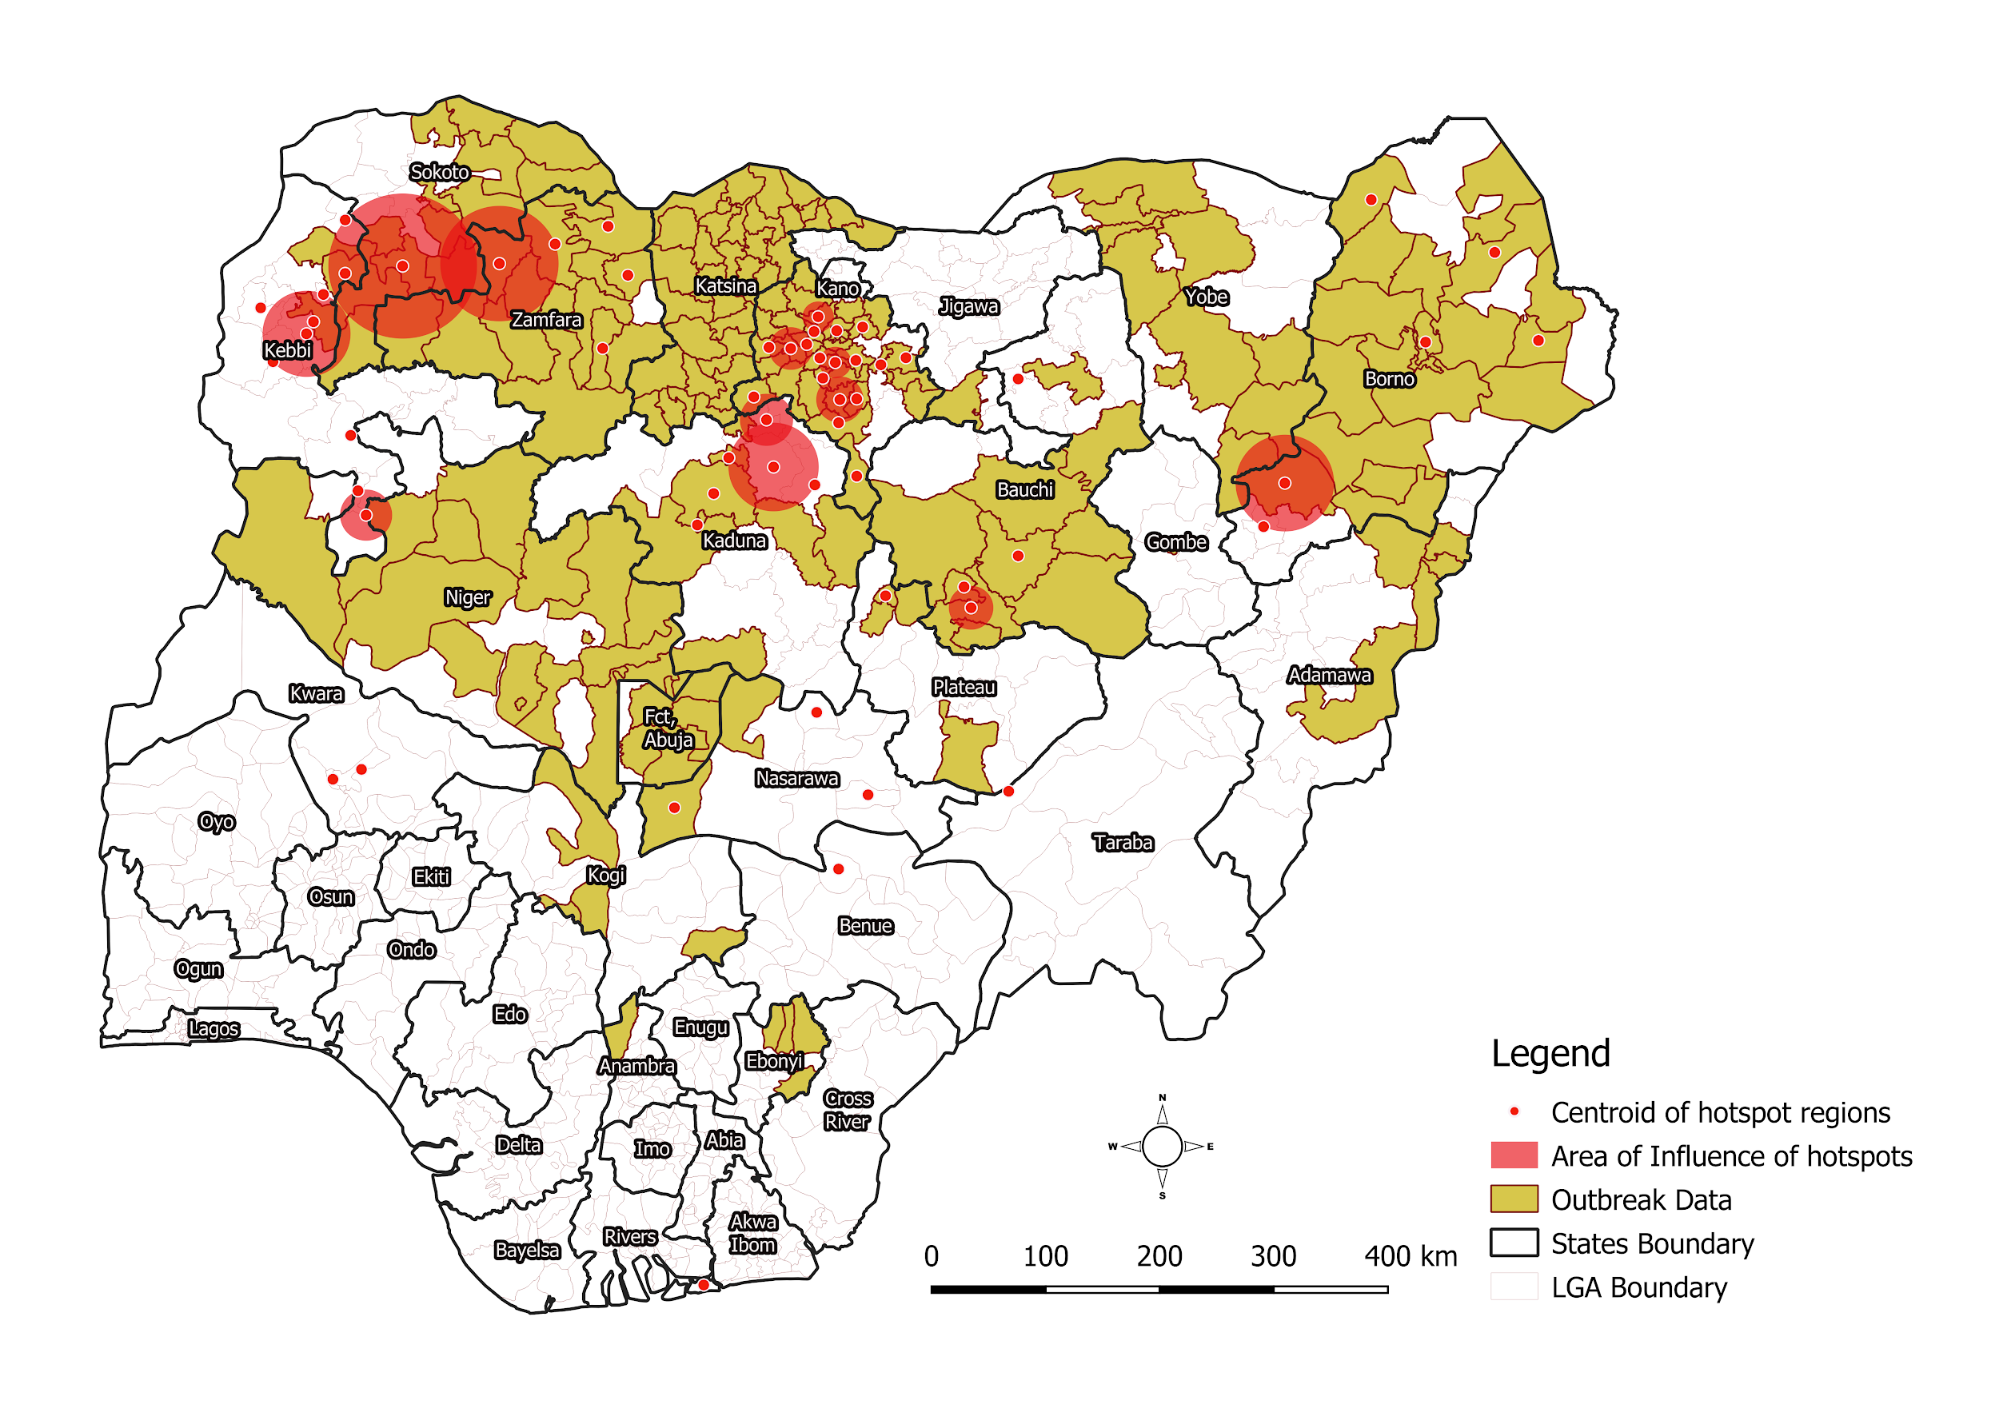 Data Source: Nigeria Centre for Disease Control